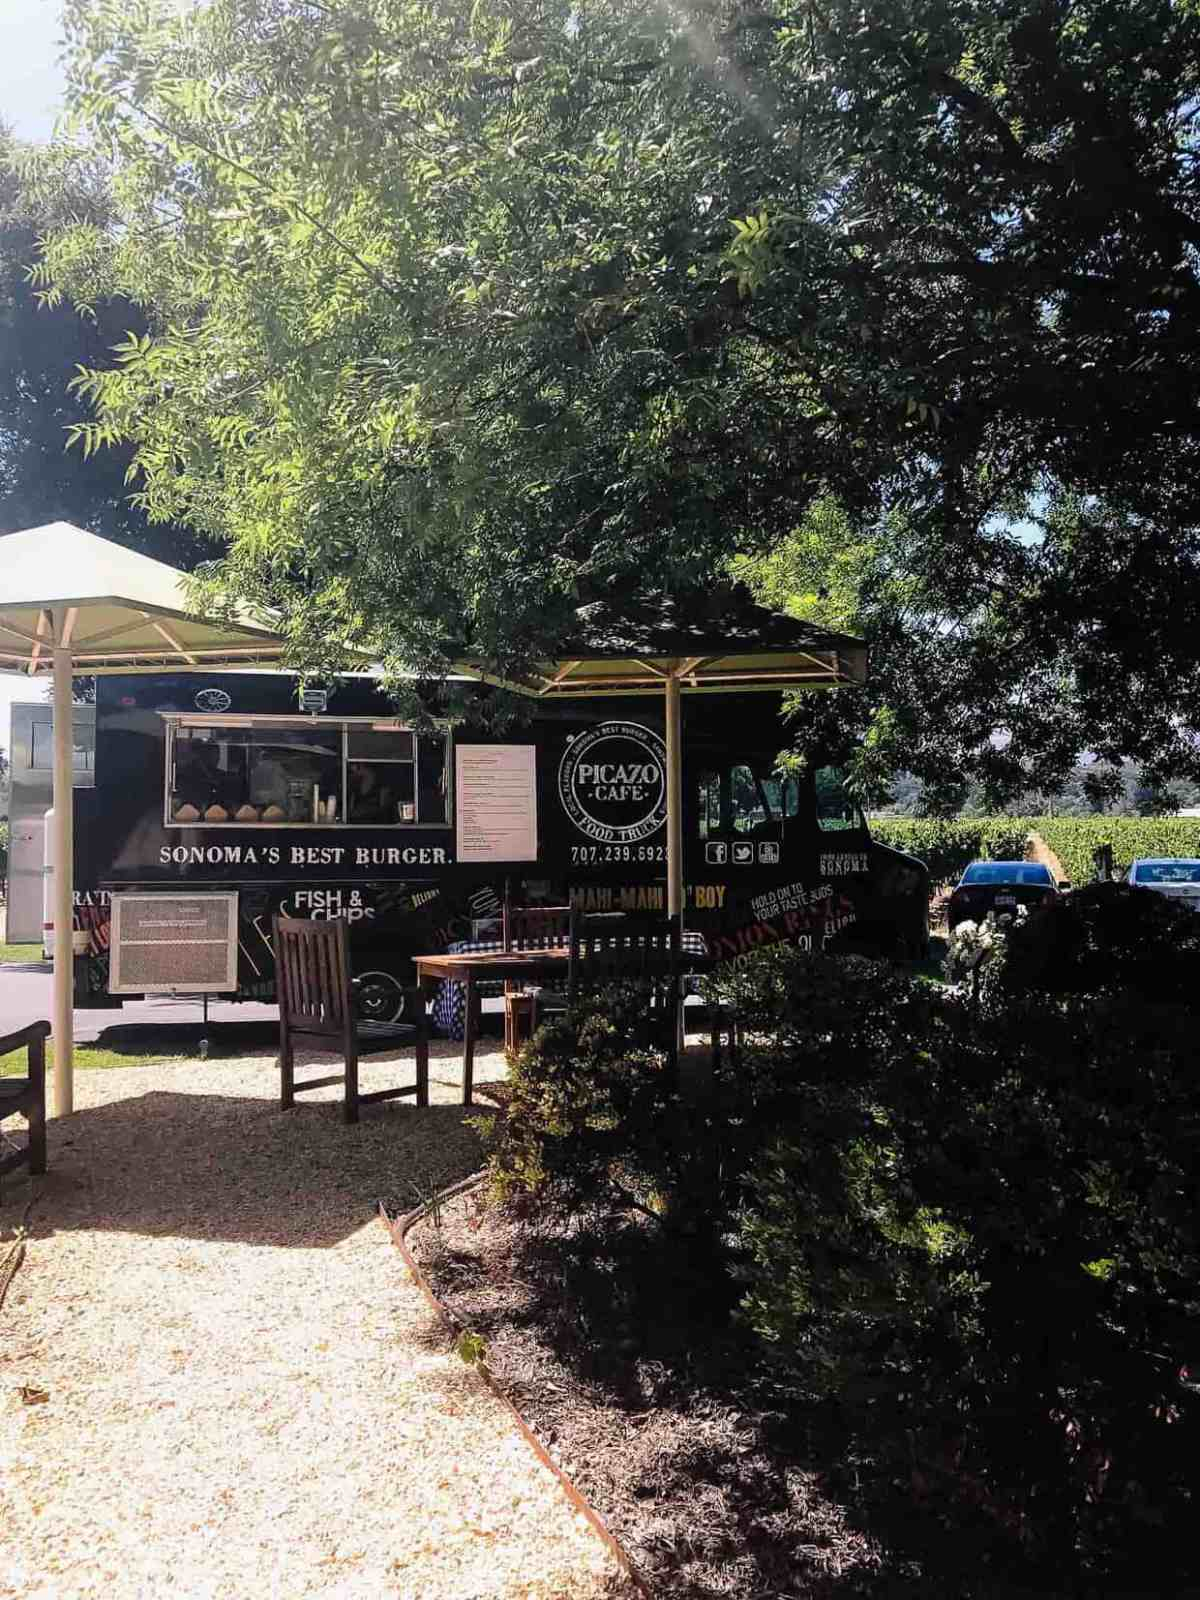 A black and white food truck parked under the shade of trees with outdoor seating.